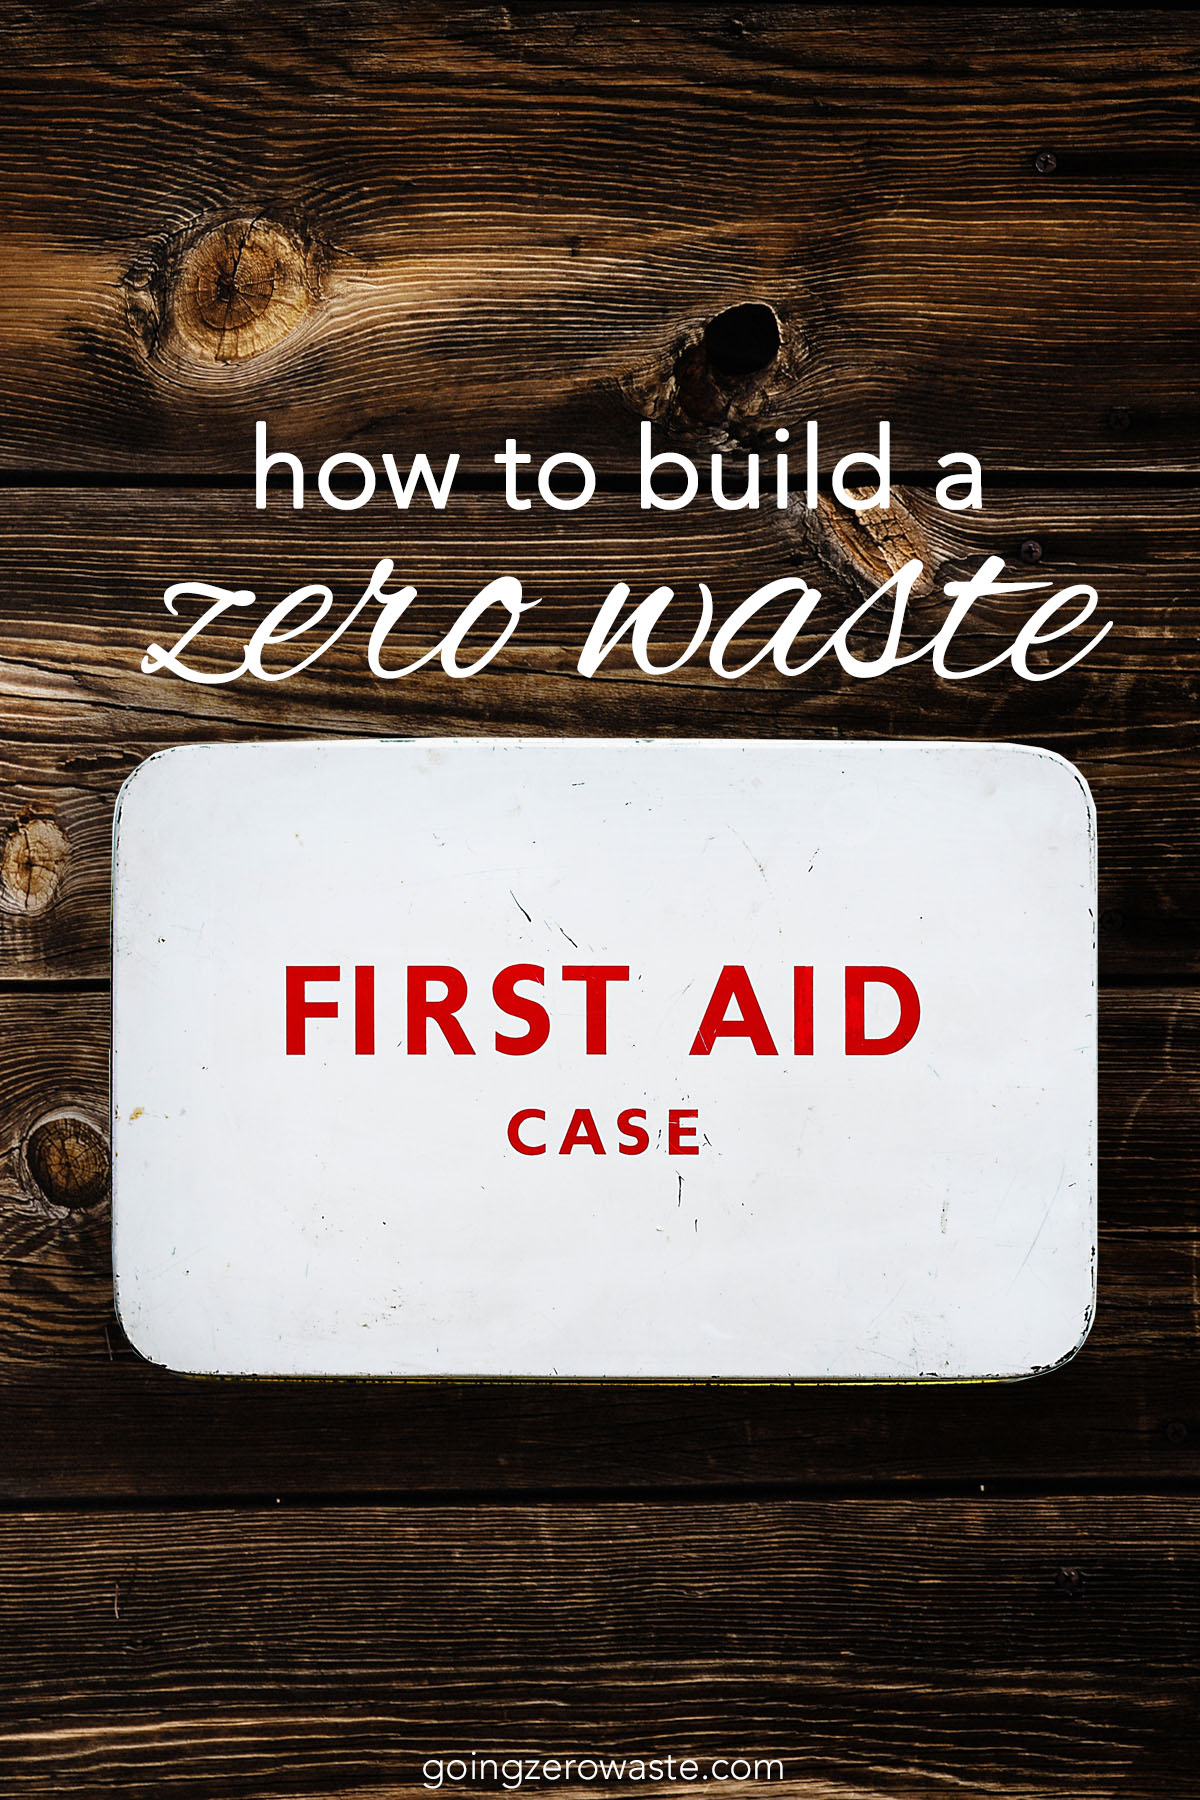 5 Tips for Building a Zero Waste First Aid Kit from www.goingzerowaste.com #zerowaste #ecofriendly #gogreen #sustainable #firstaid #wellness #firstaidkit